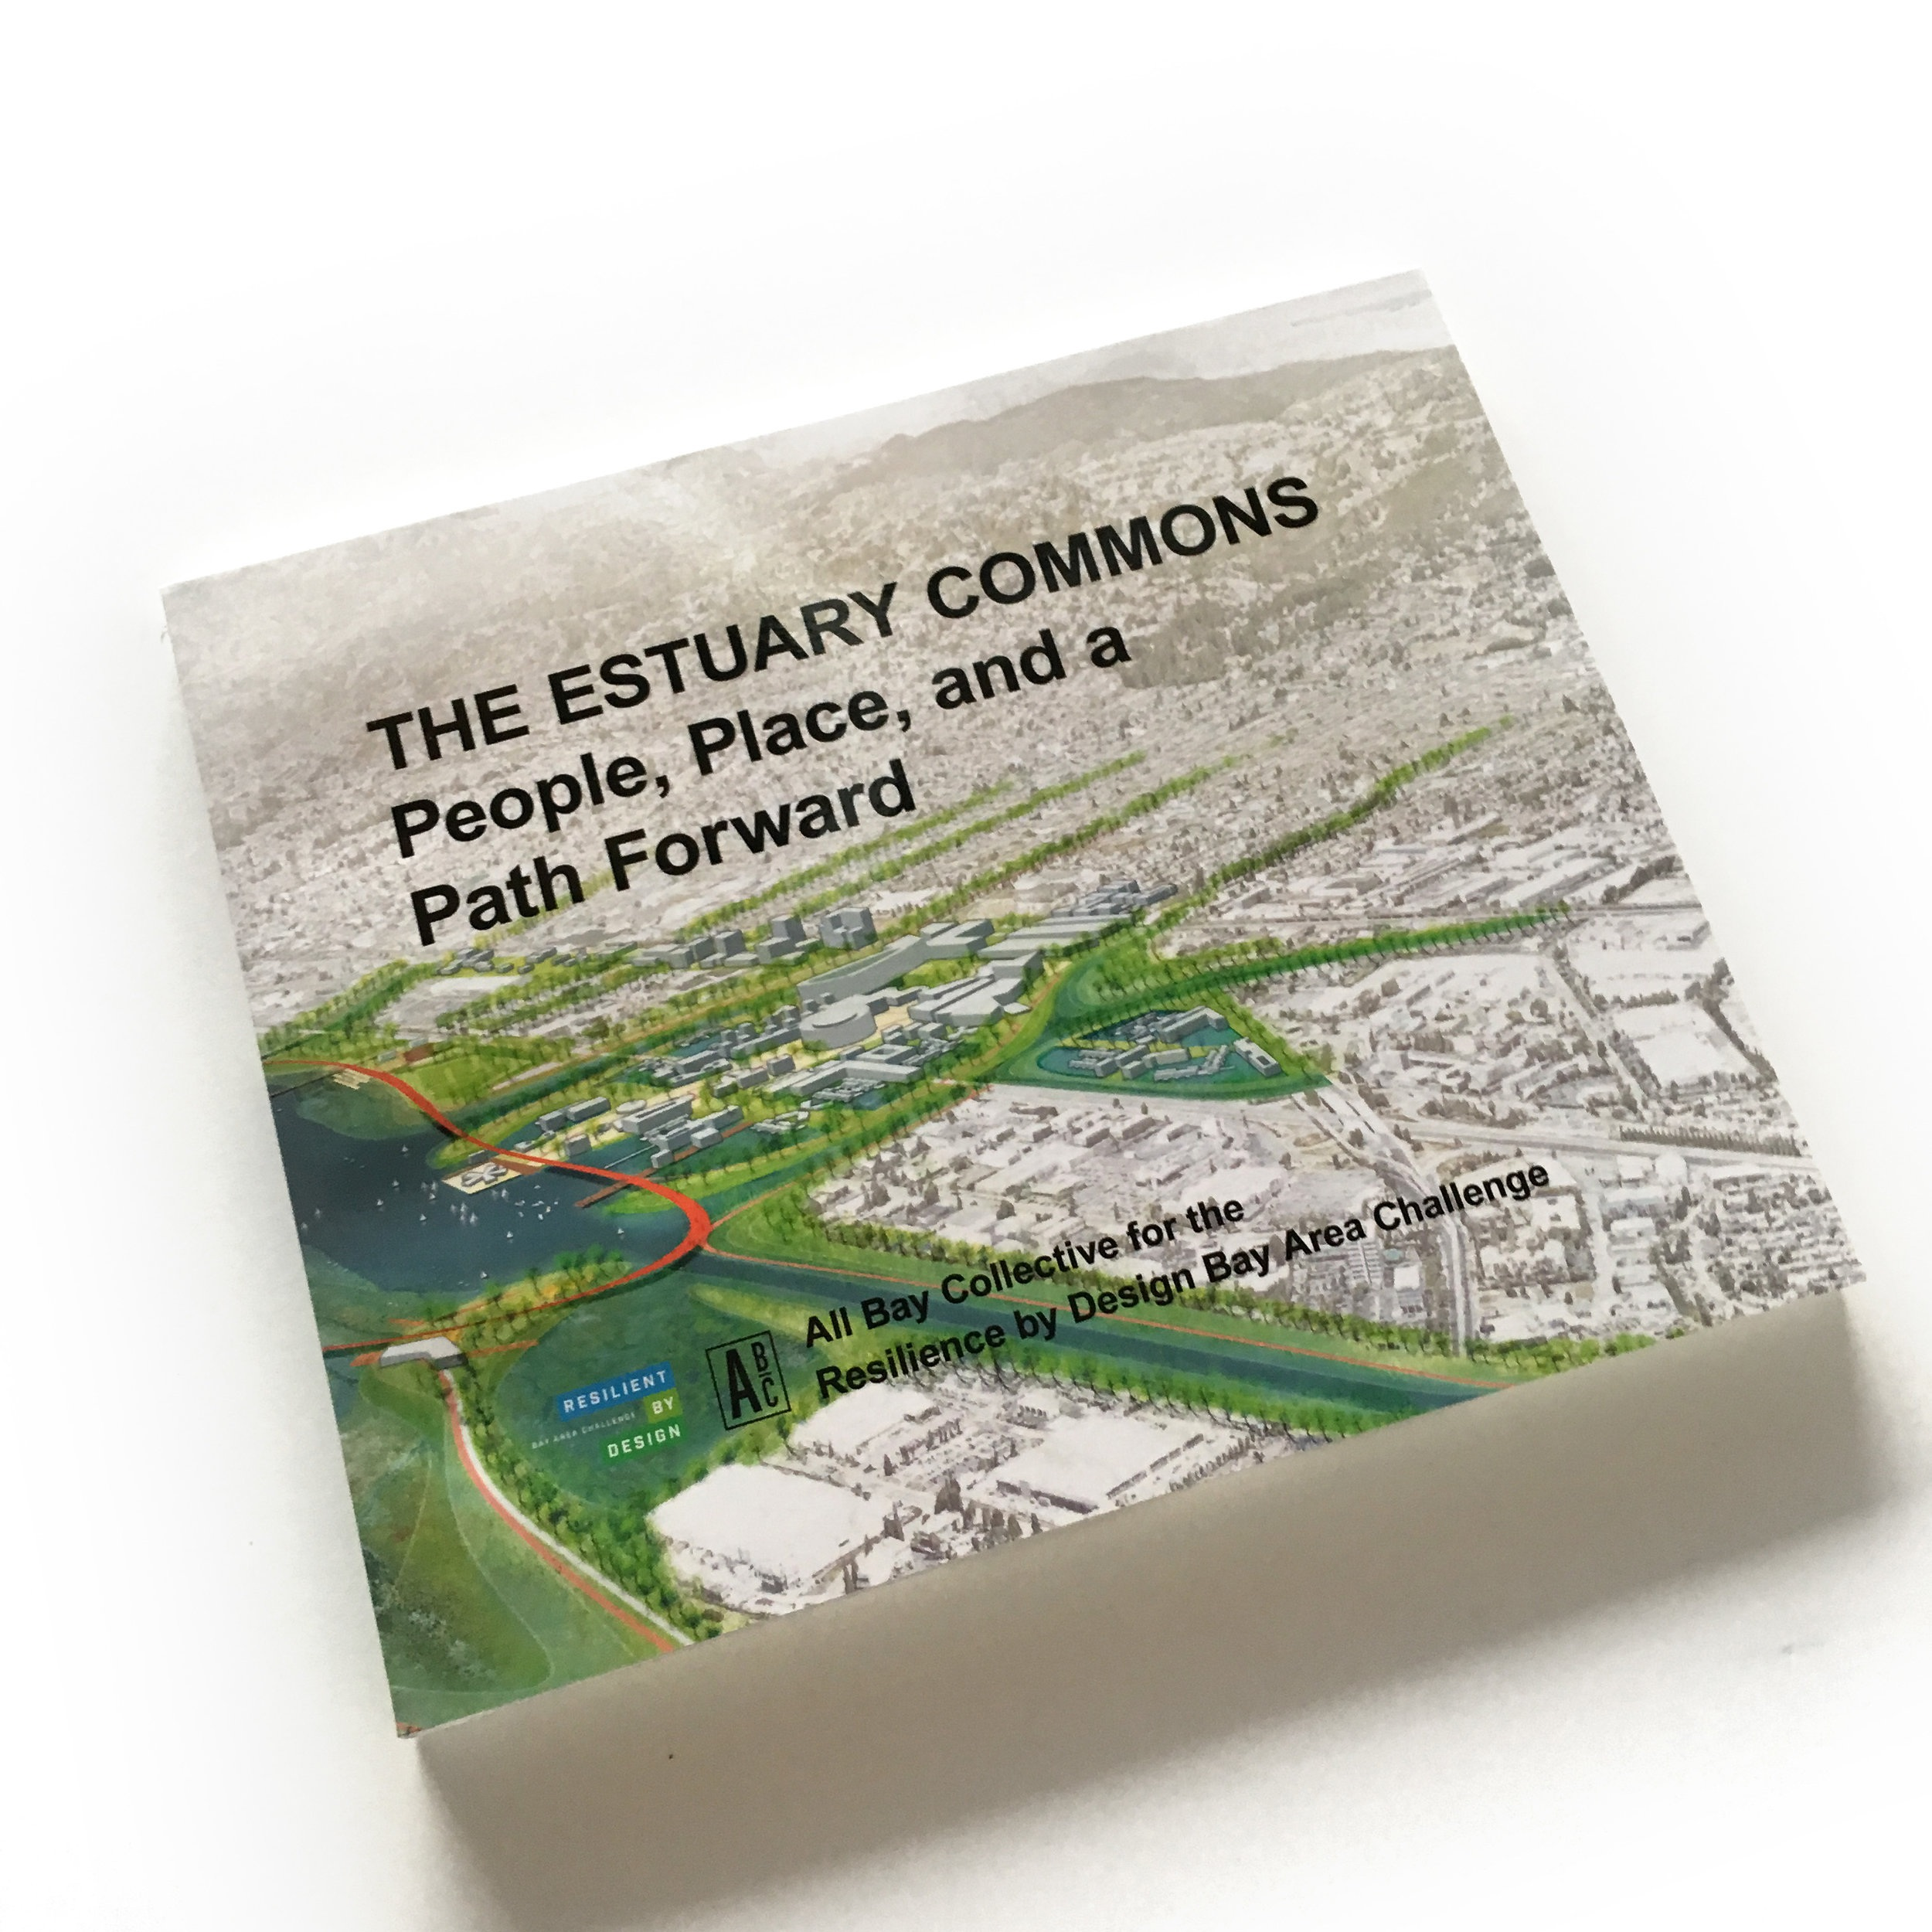 The Estuary Commons: People, Place and a Path Forward. Image: The All Bay Collective